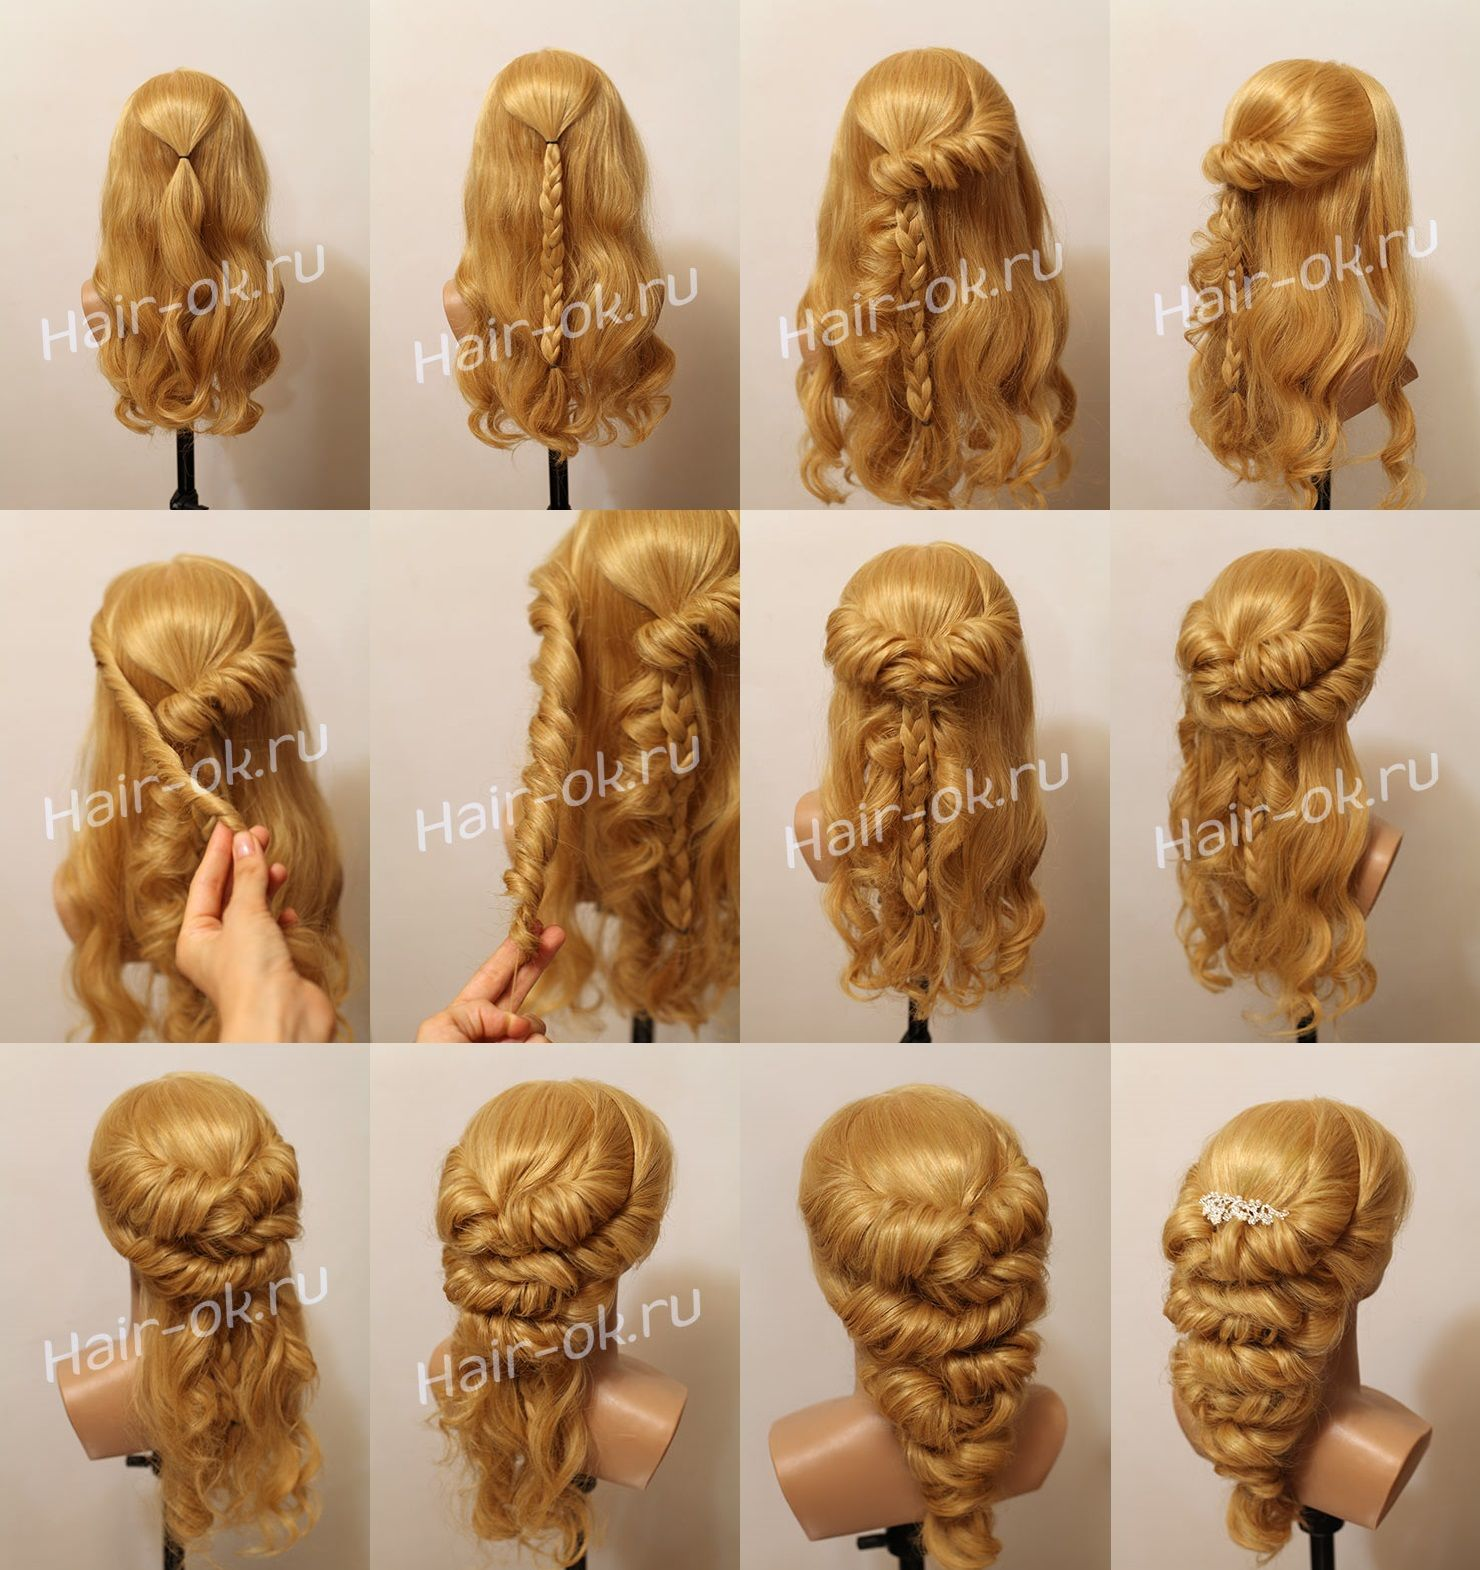 Pin by adina valasse on coaifure pinterest hair style updos and